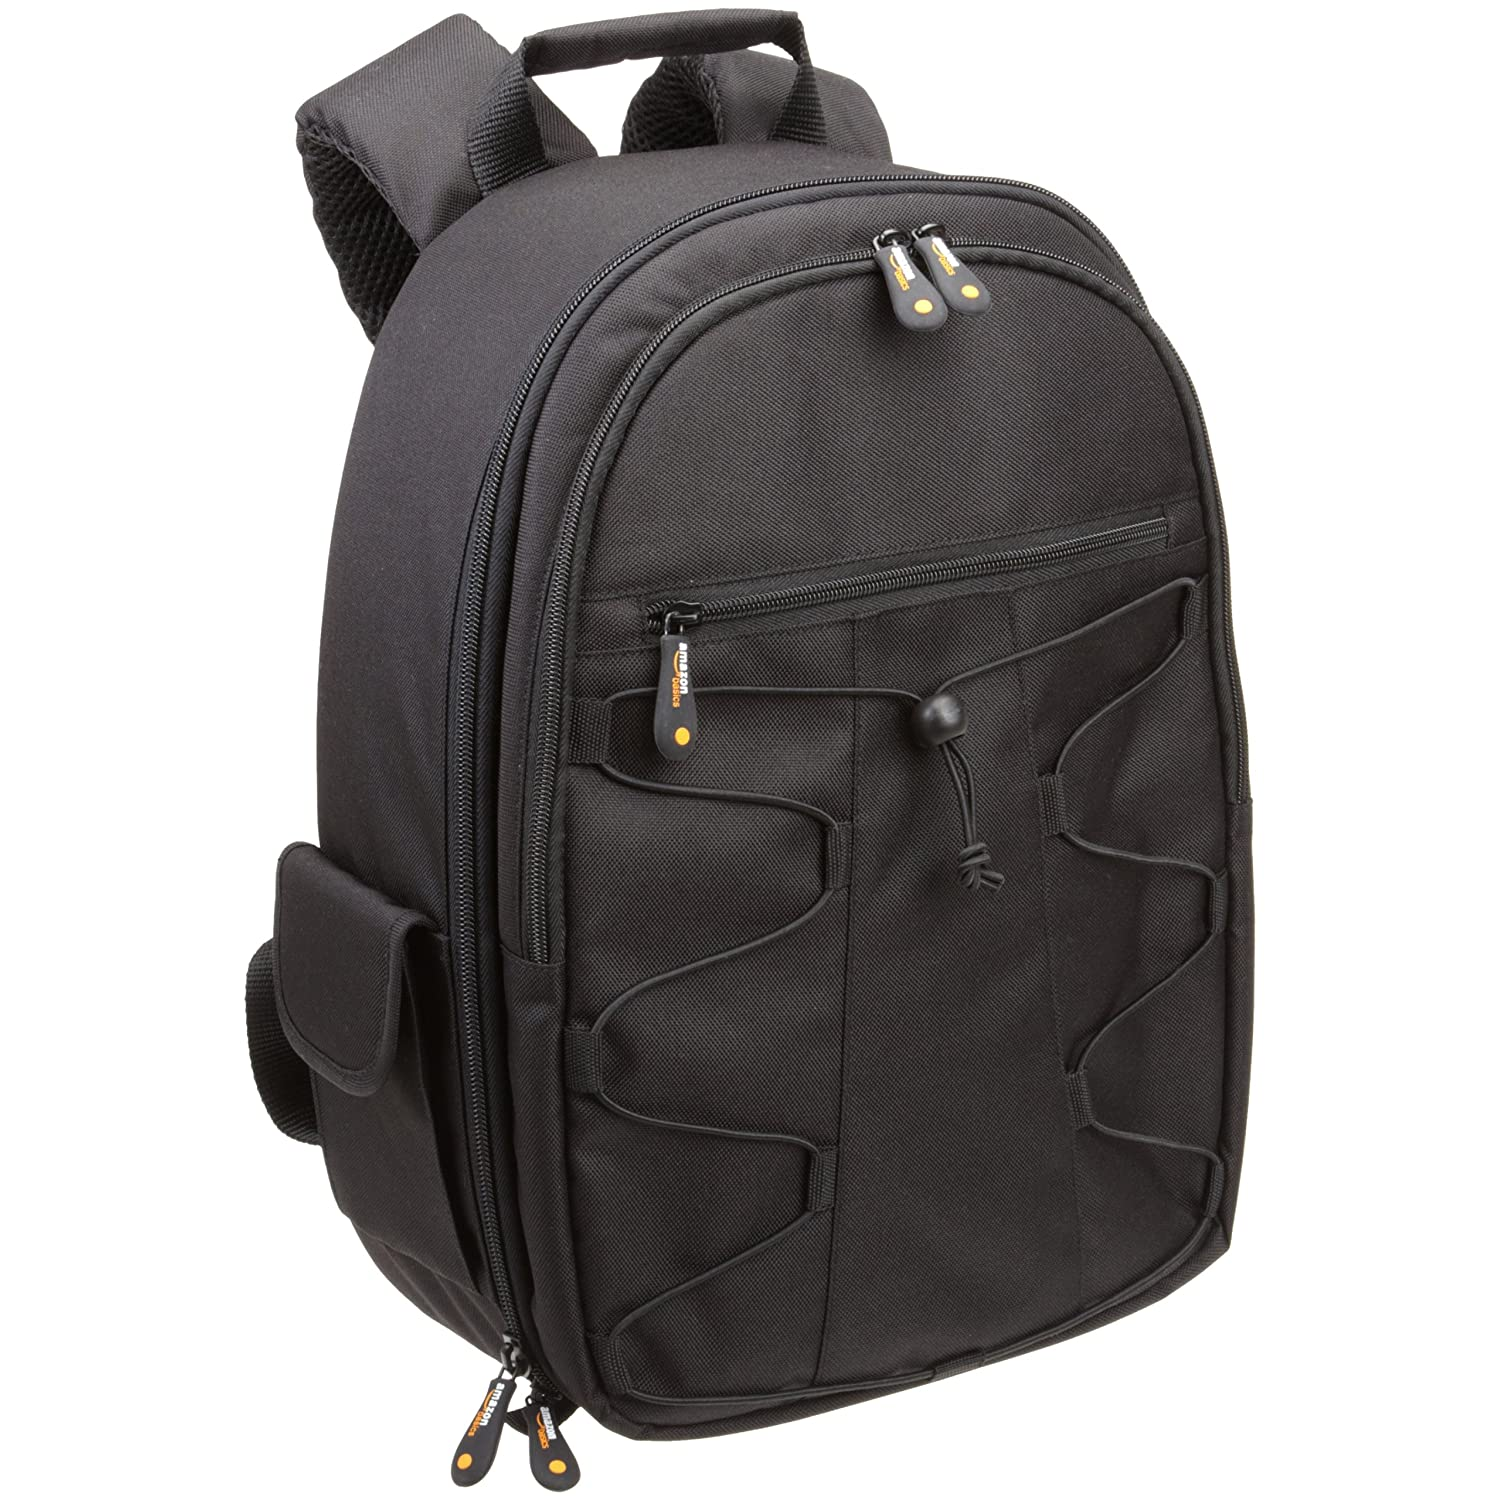 AmazonBasics Backpack for SLR Cameras and Accessories